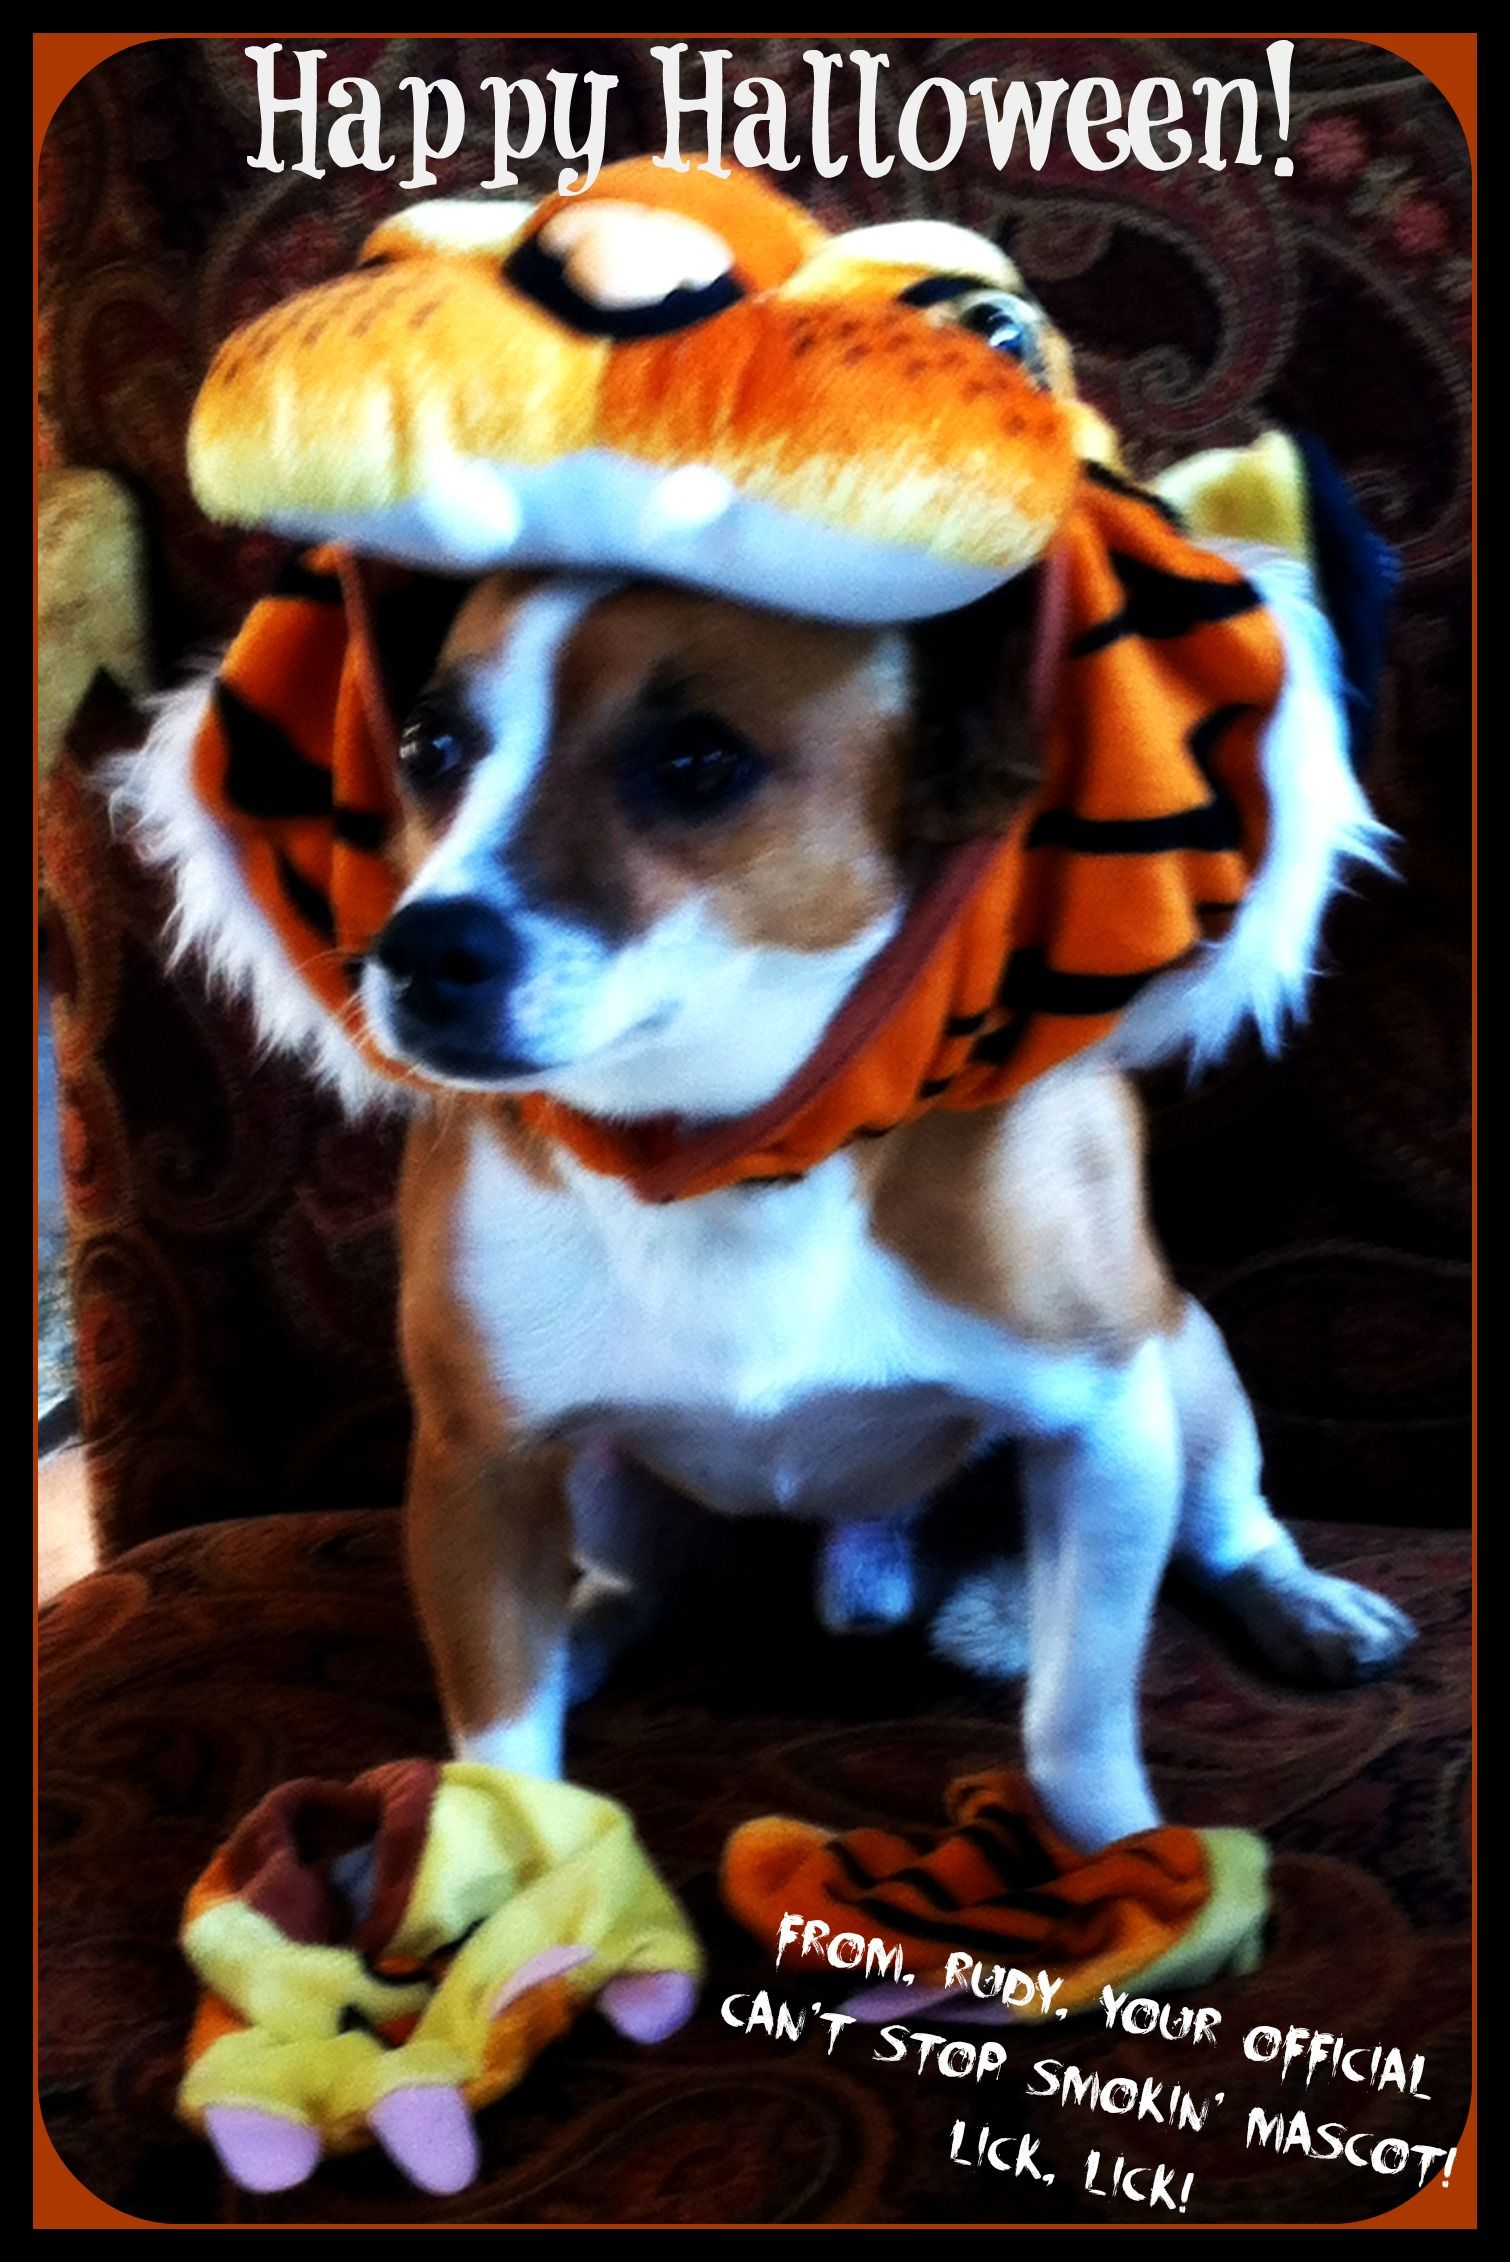 Happy Halloween!  From our mascot, Rudy!